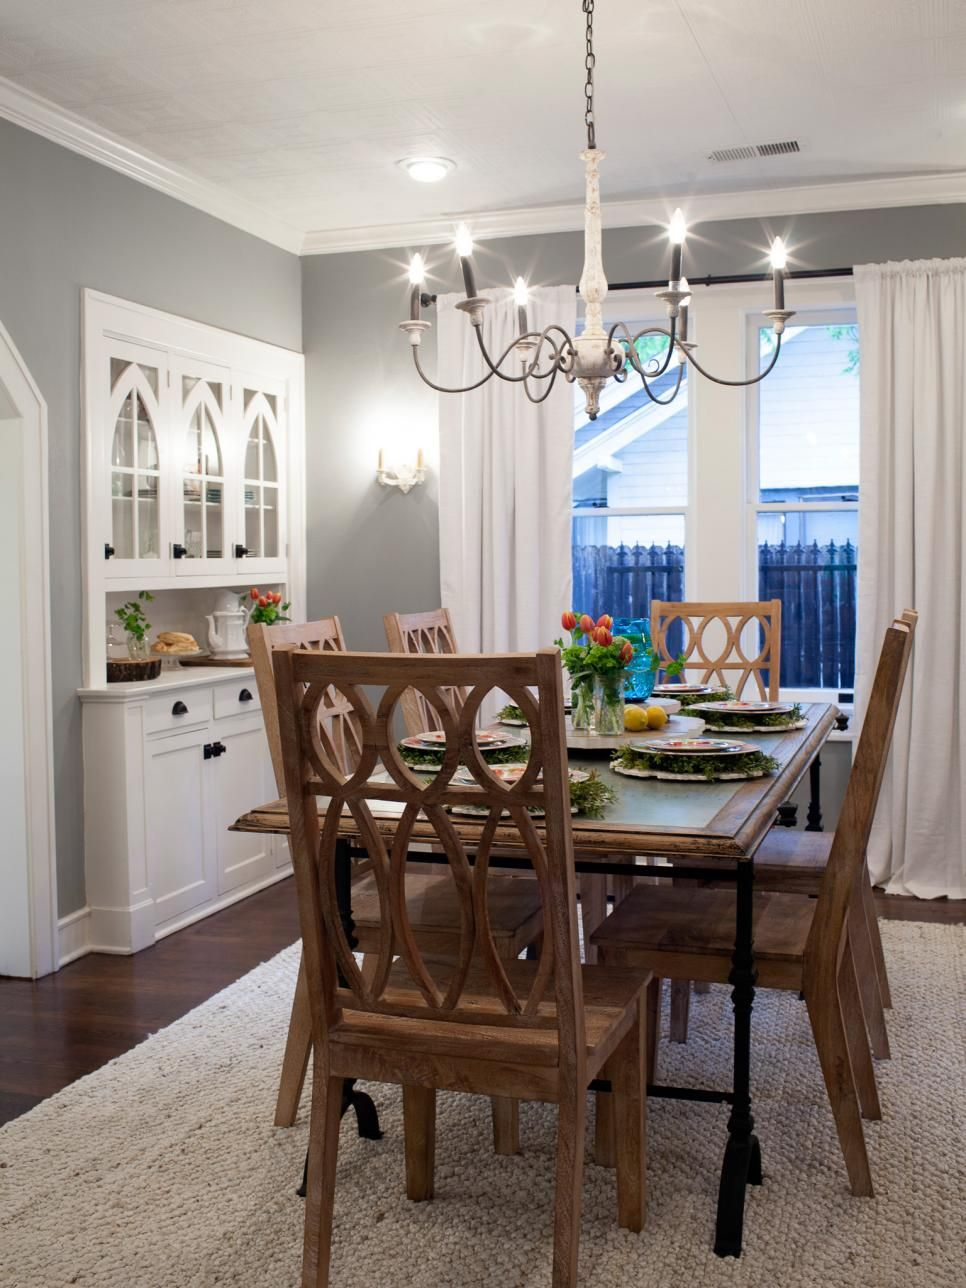 Fixer upper craftsman kitchen - 17 Best Images About Magnolia Homes Fixer Upper Chip And Joanna Gaines Ideas On Pinterest Fixer Upper Hosts Dog Lovers And Rustic Style